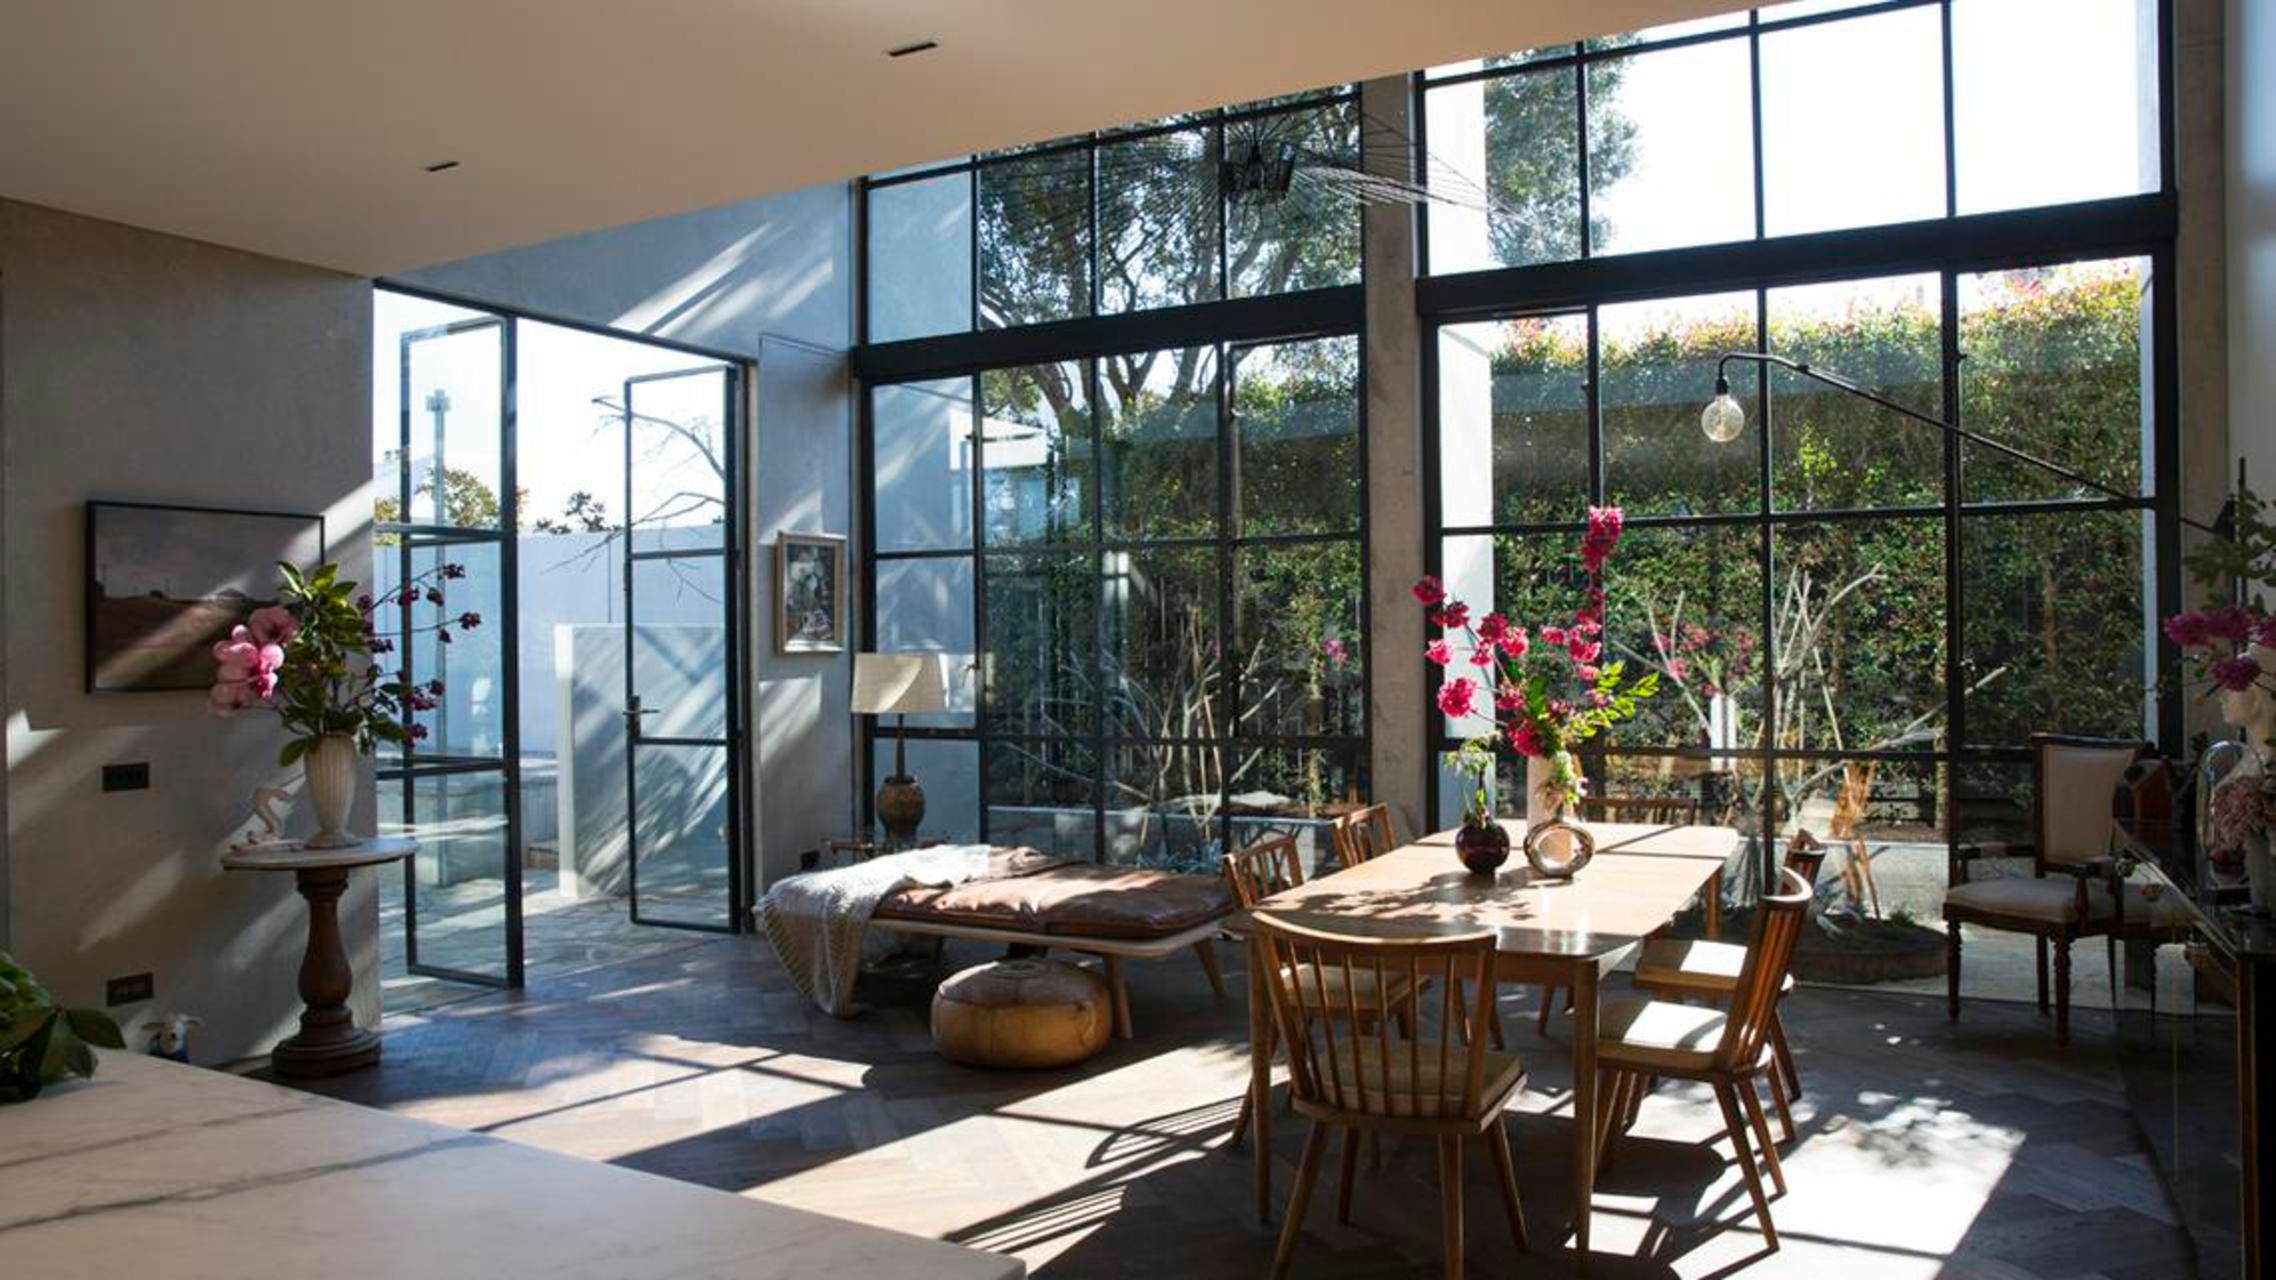 NZ House U0026 Garden Stylist Sarah Lods Tells Us She Is Totally At Peace In  Her Home That Featured On Grand Designs NZ.